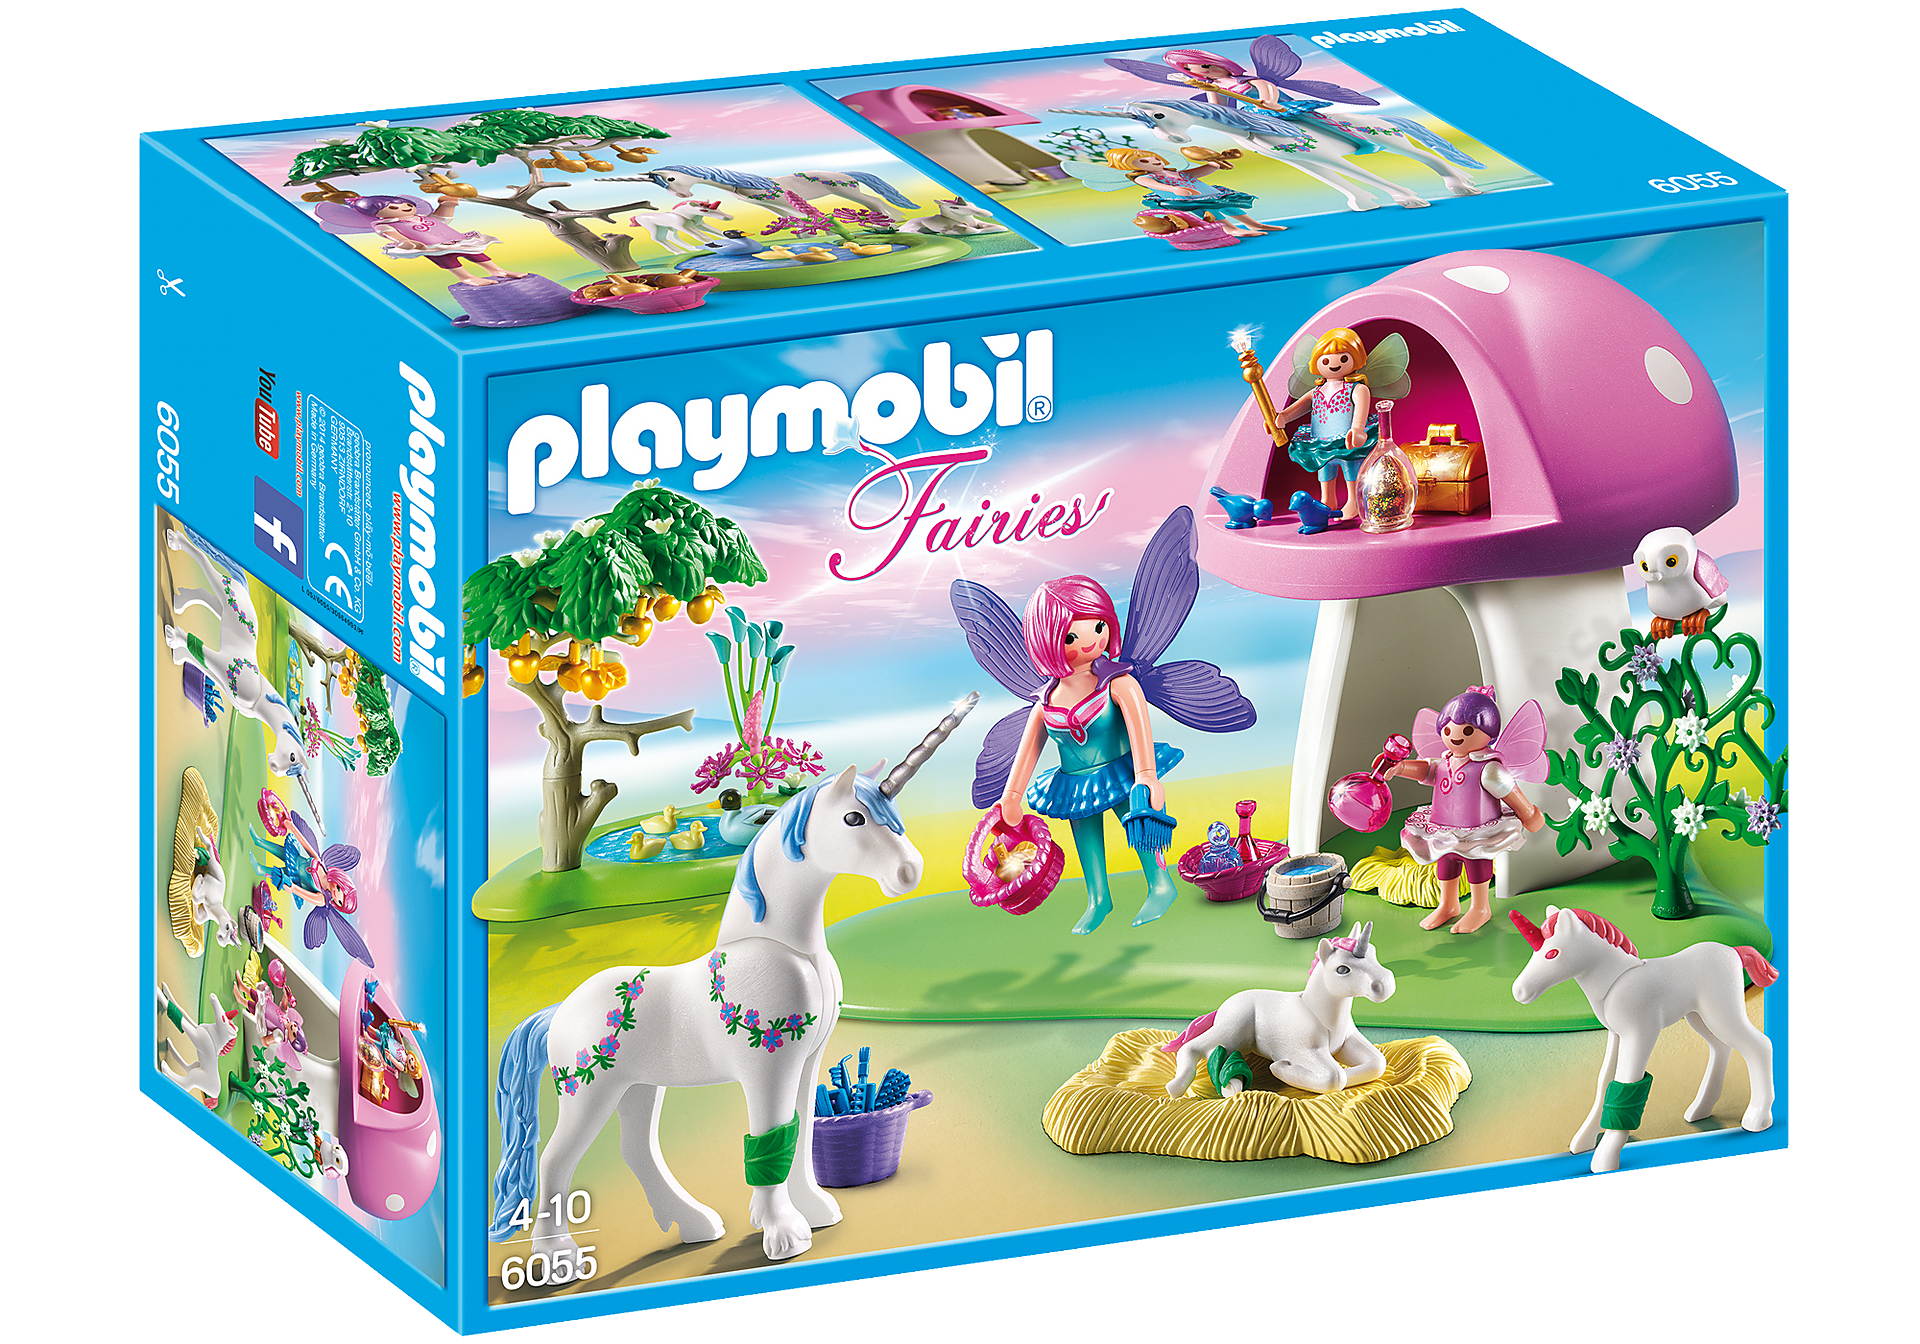 http://media.playmobil.com/i/playmobil/6055_product_box_front/Fairies with Toadstool House